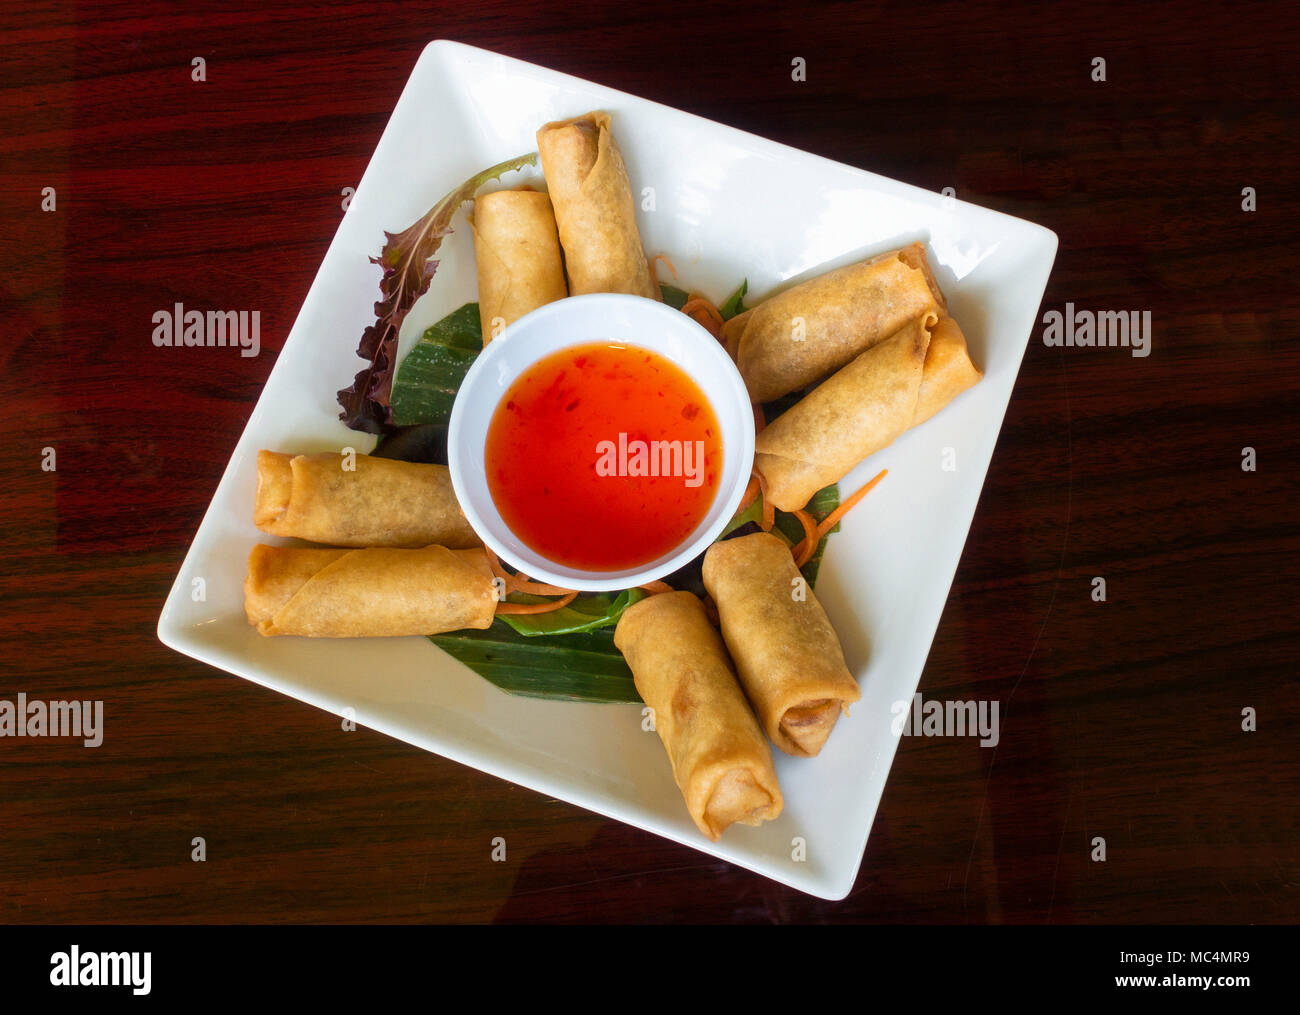 Thai spring rolls with a spicy dipping sauce - Stock Image